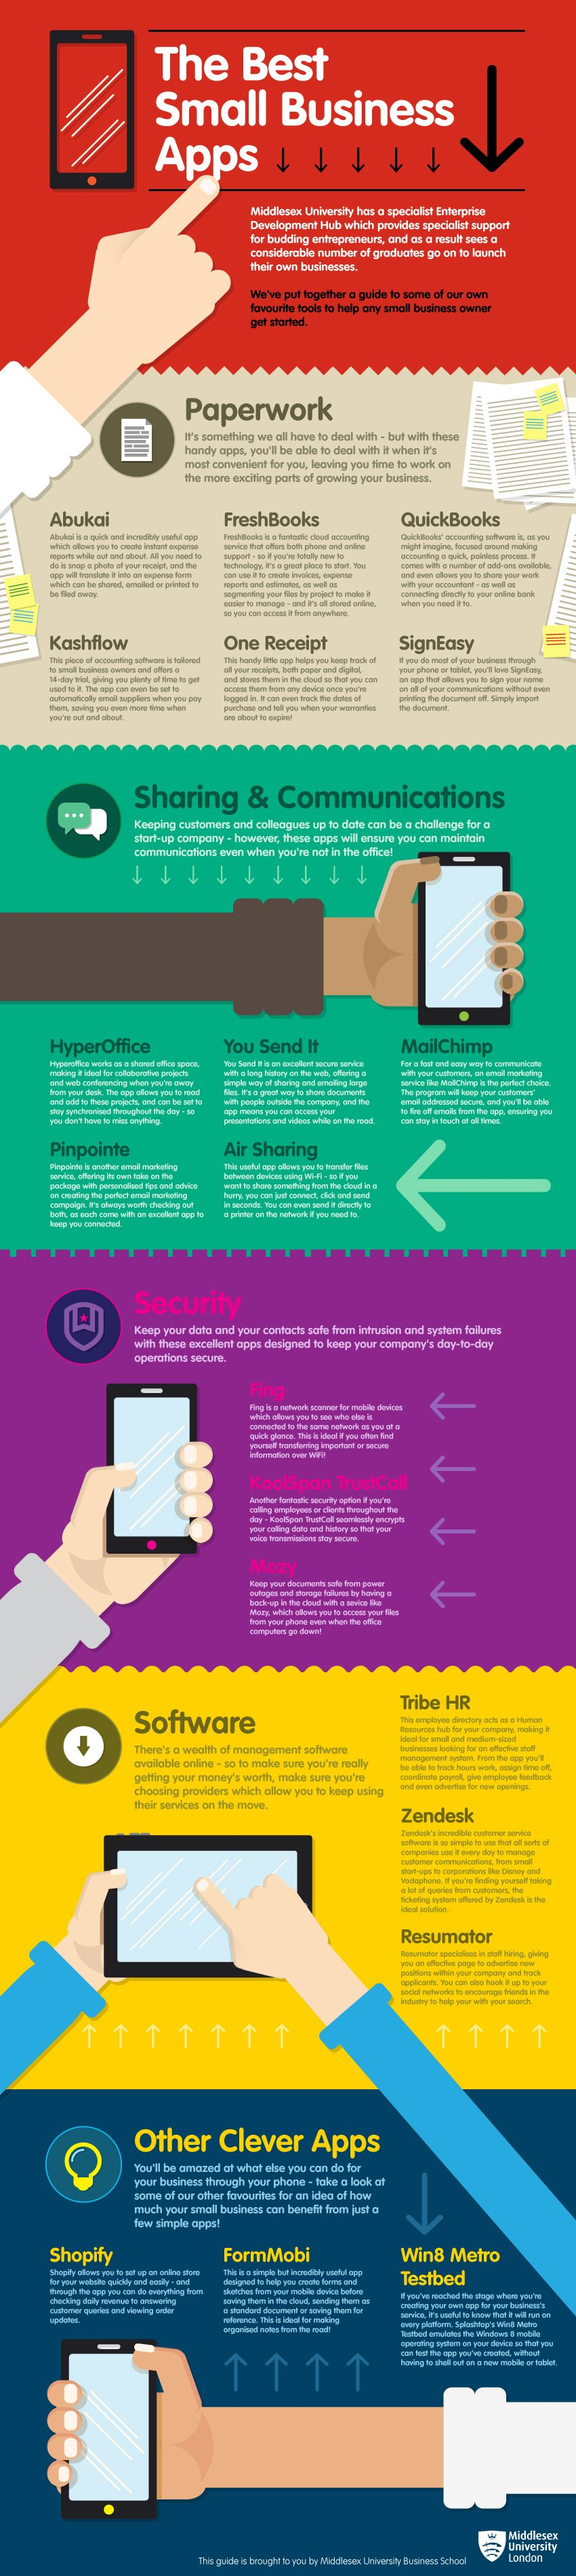 run a small business here are some useful apps